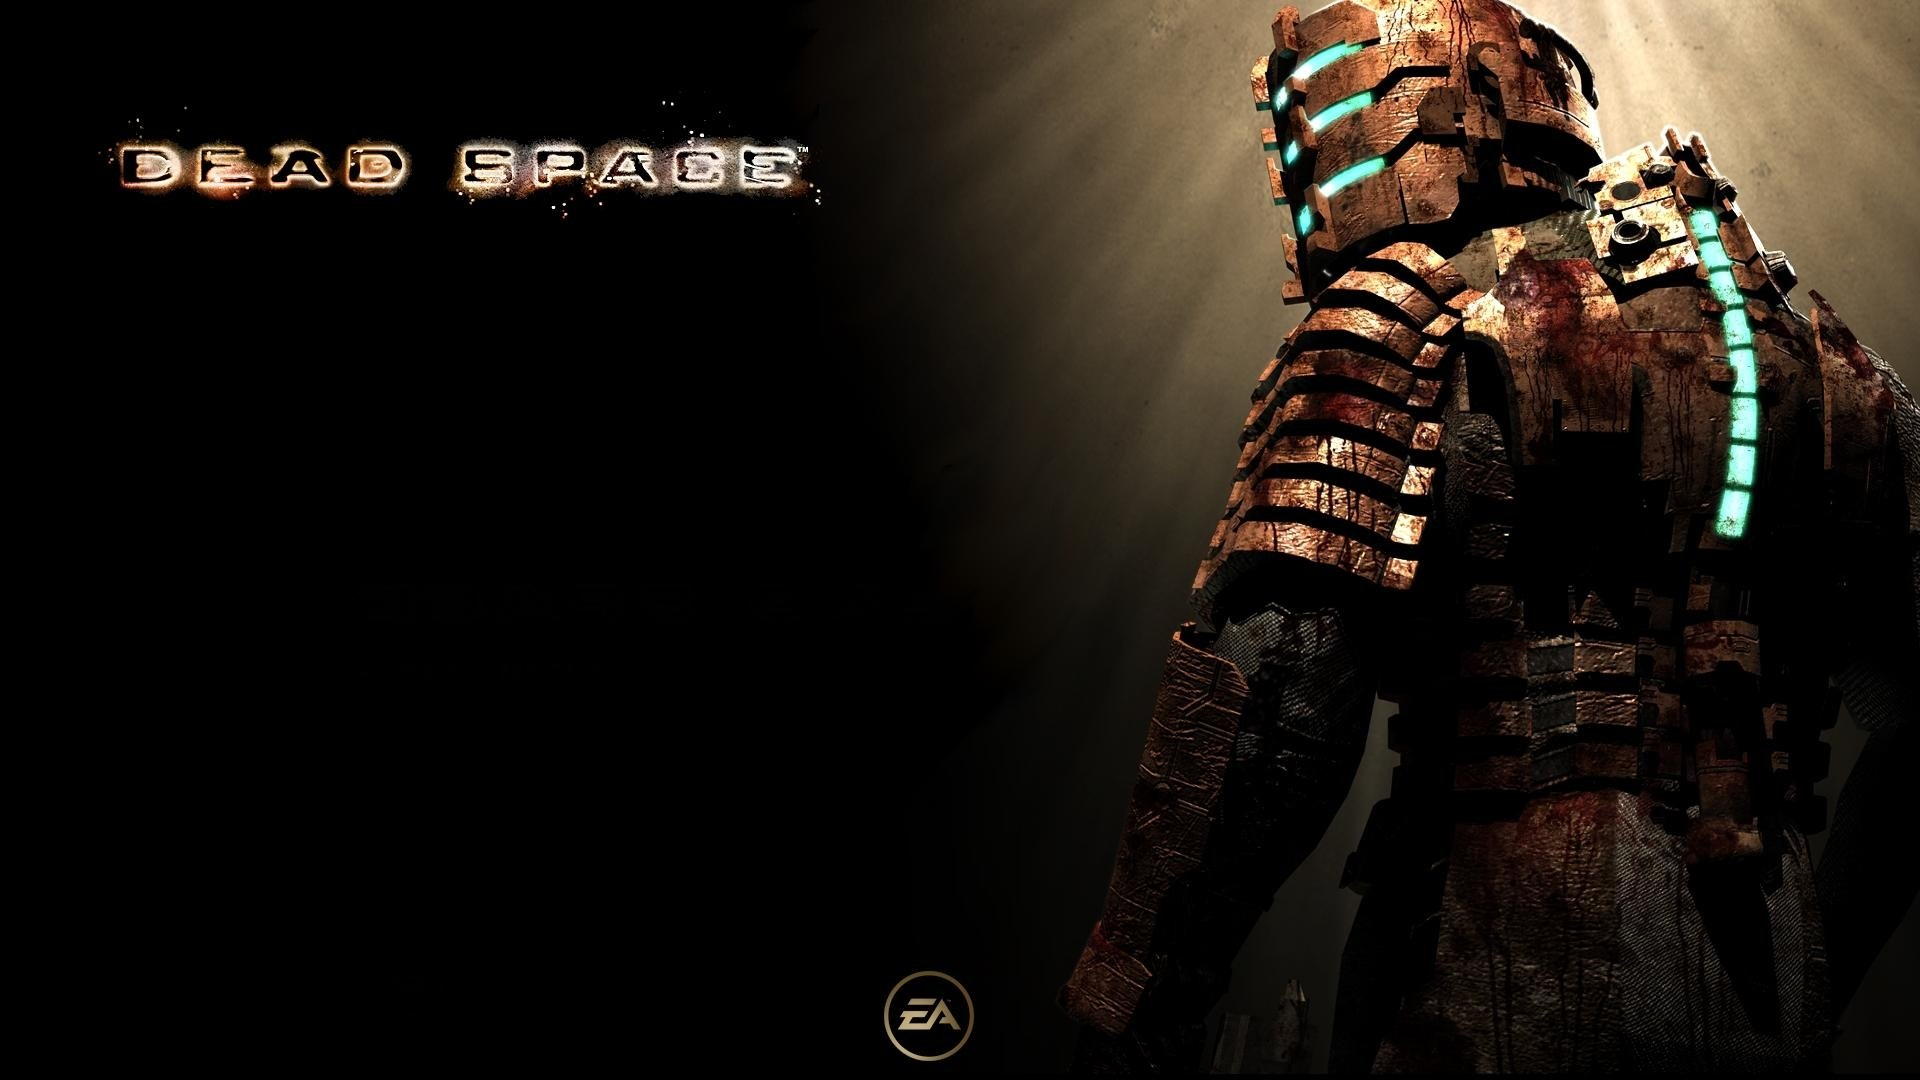 Dead Space HD Wallpaper